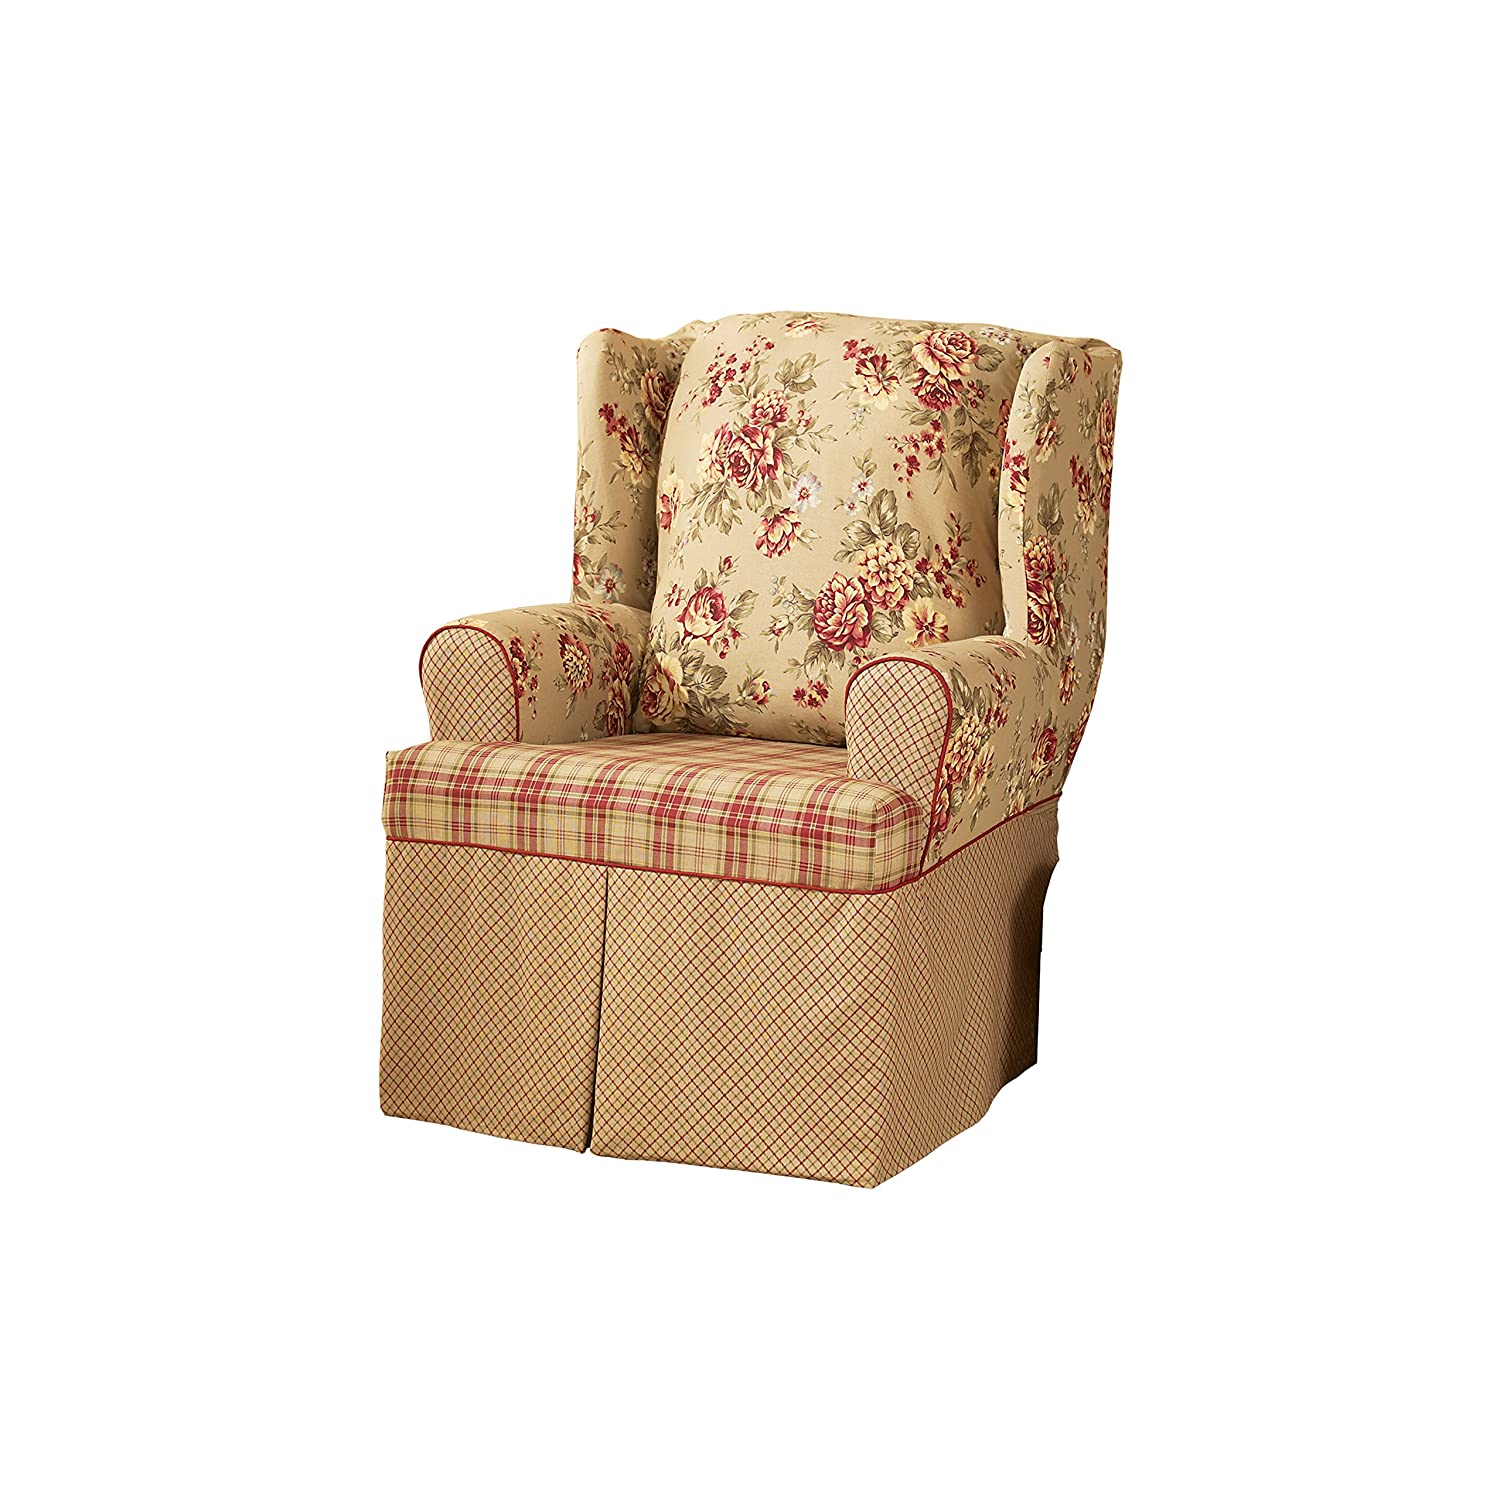 Sure Fit SF29848 Lexington Relaxed Fit 1 Piece Wing Chair Slipcover, Multi Surefit Inc.